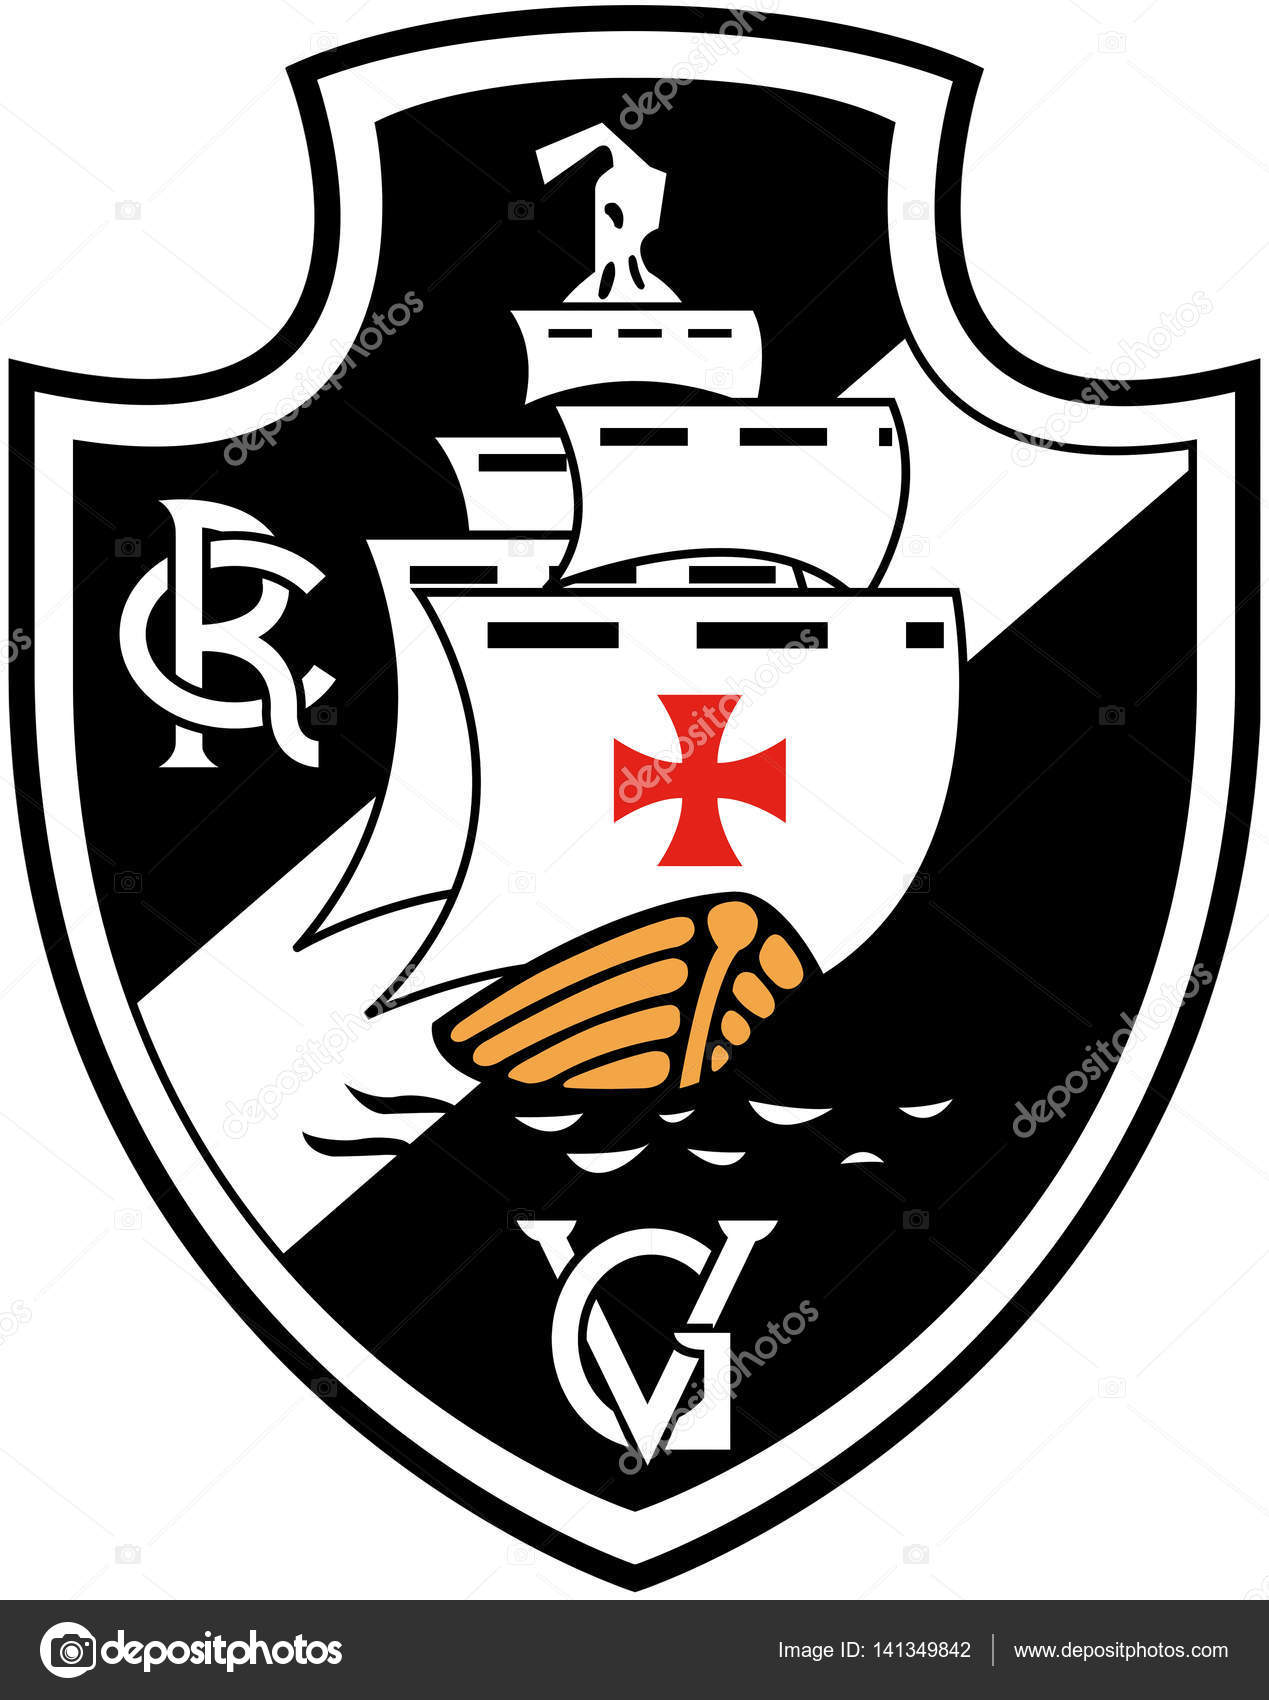 And Vasco Da Gama The Emblem Of The Sports Club